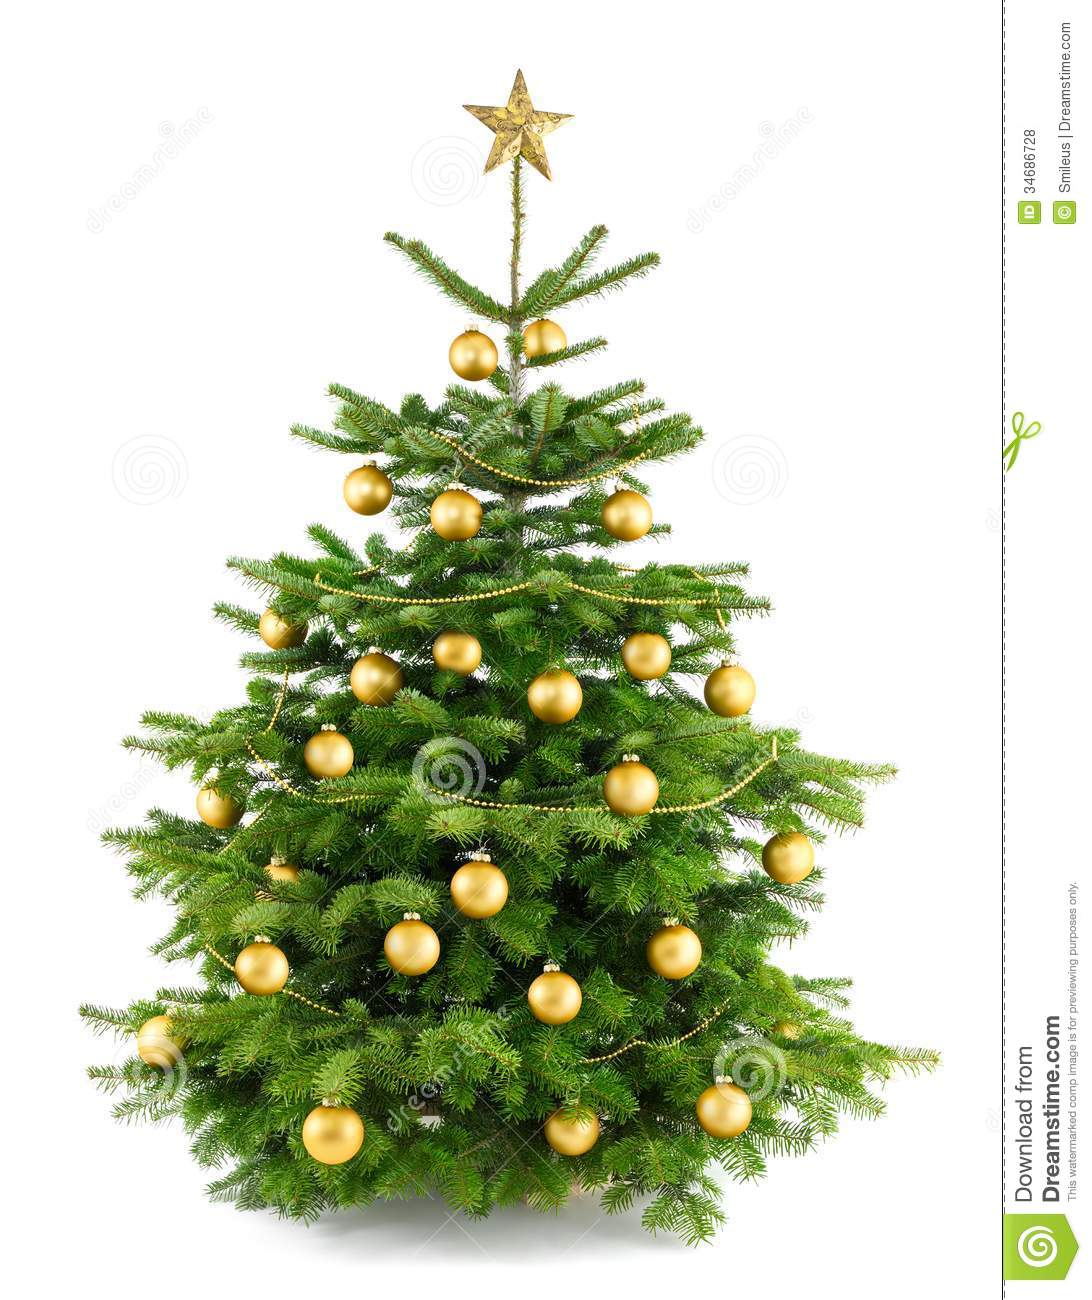 Lush christmas tree with gold ornaments stock photo